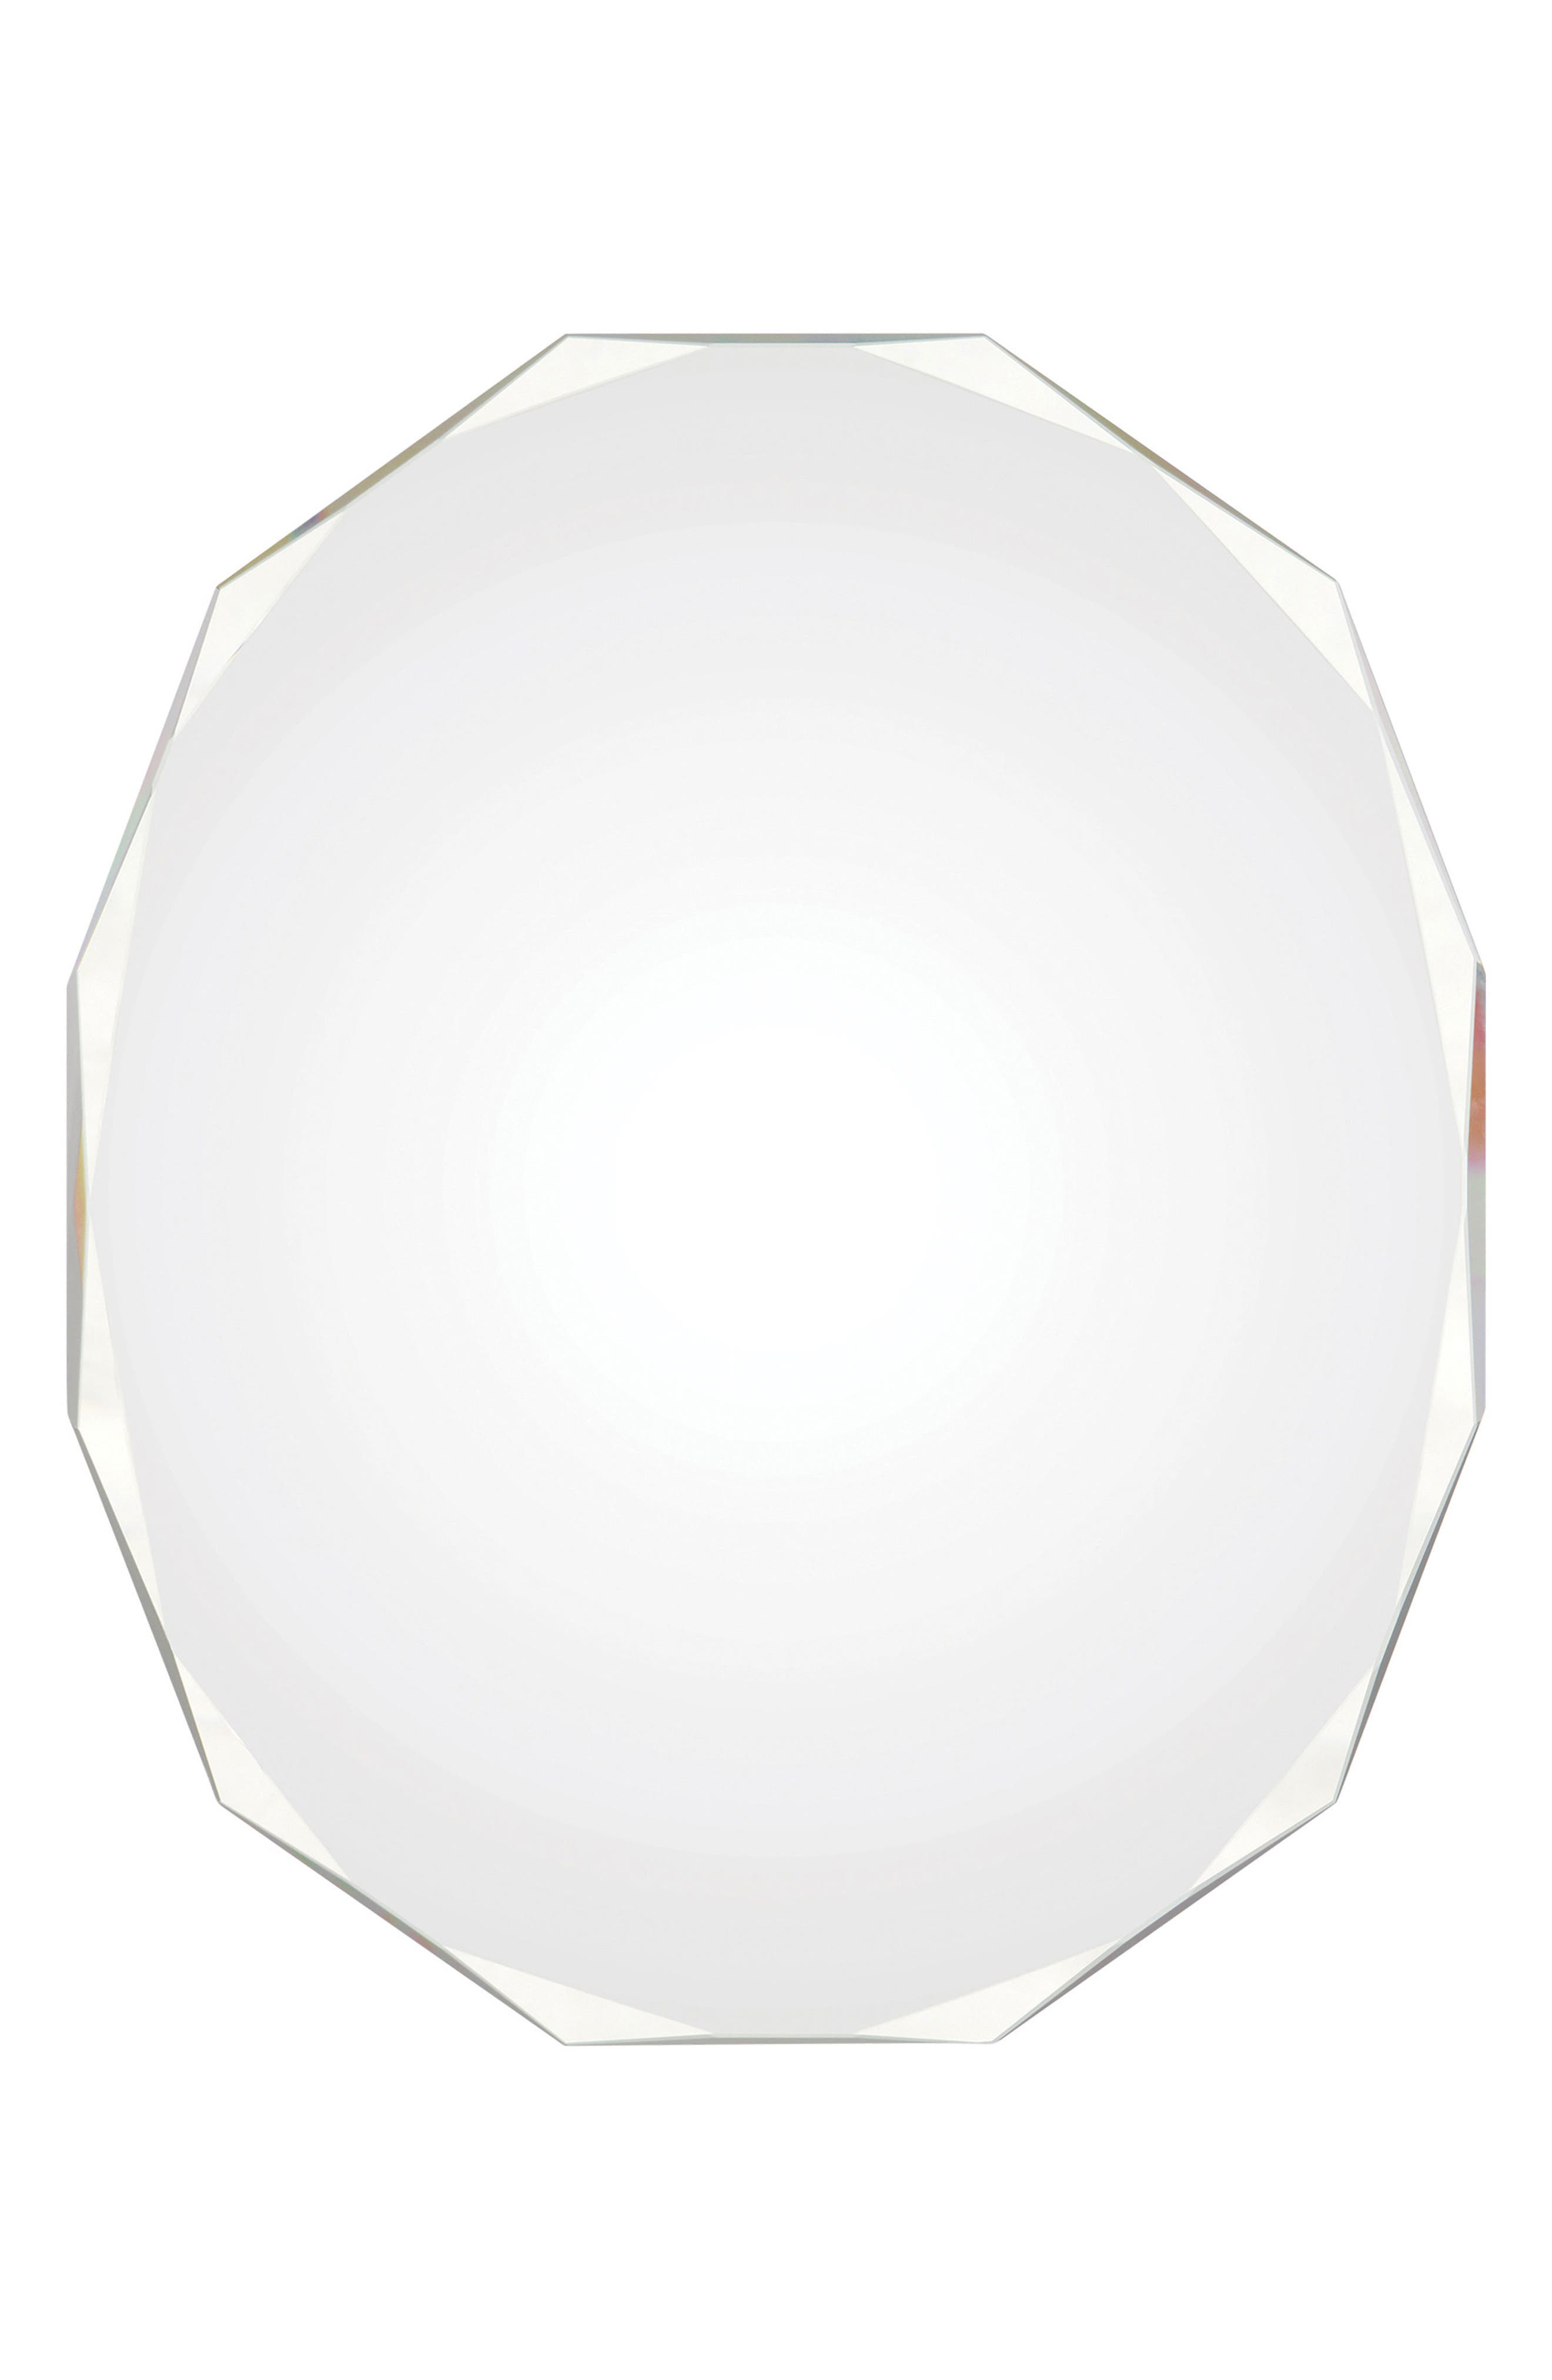 Astor Round Mirror,                         Main,                         color, Clear